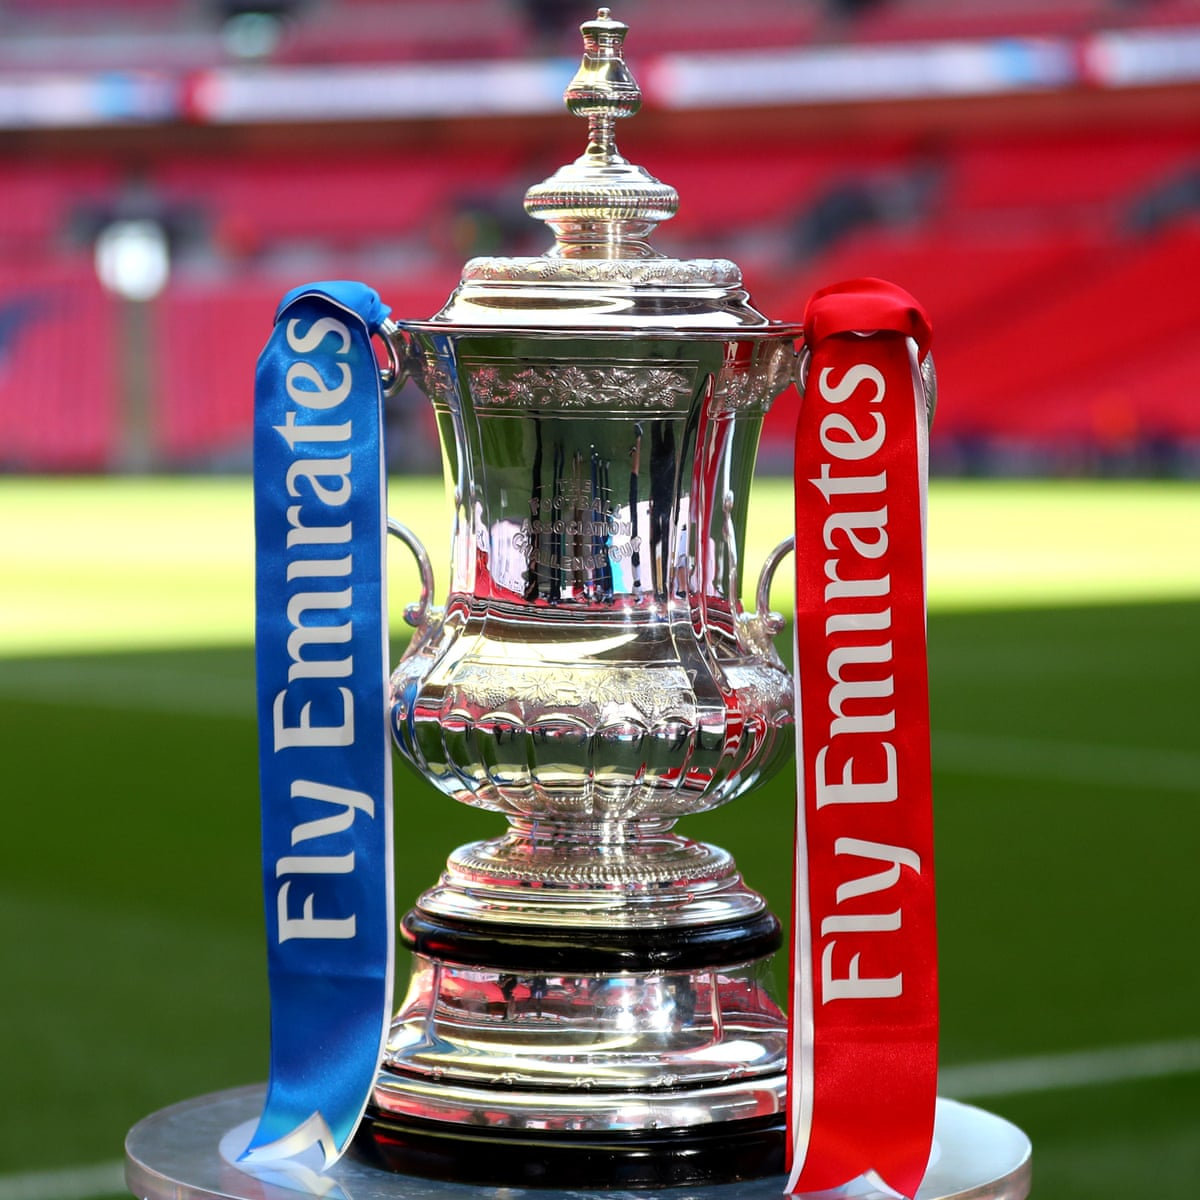 Fa cup betting golf betting games for two